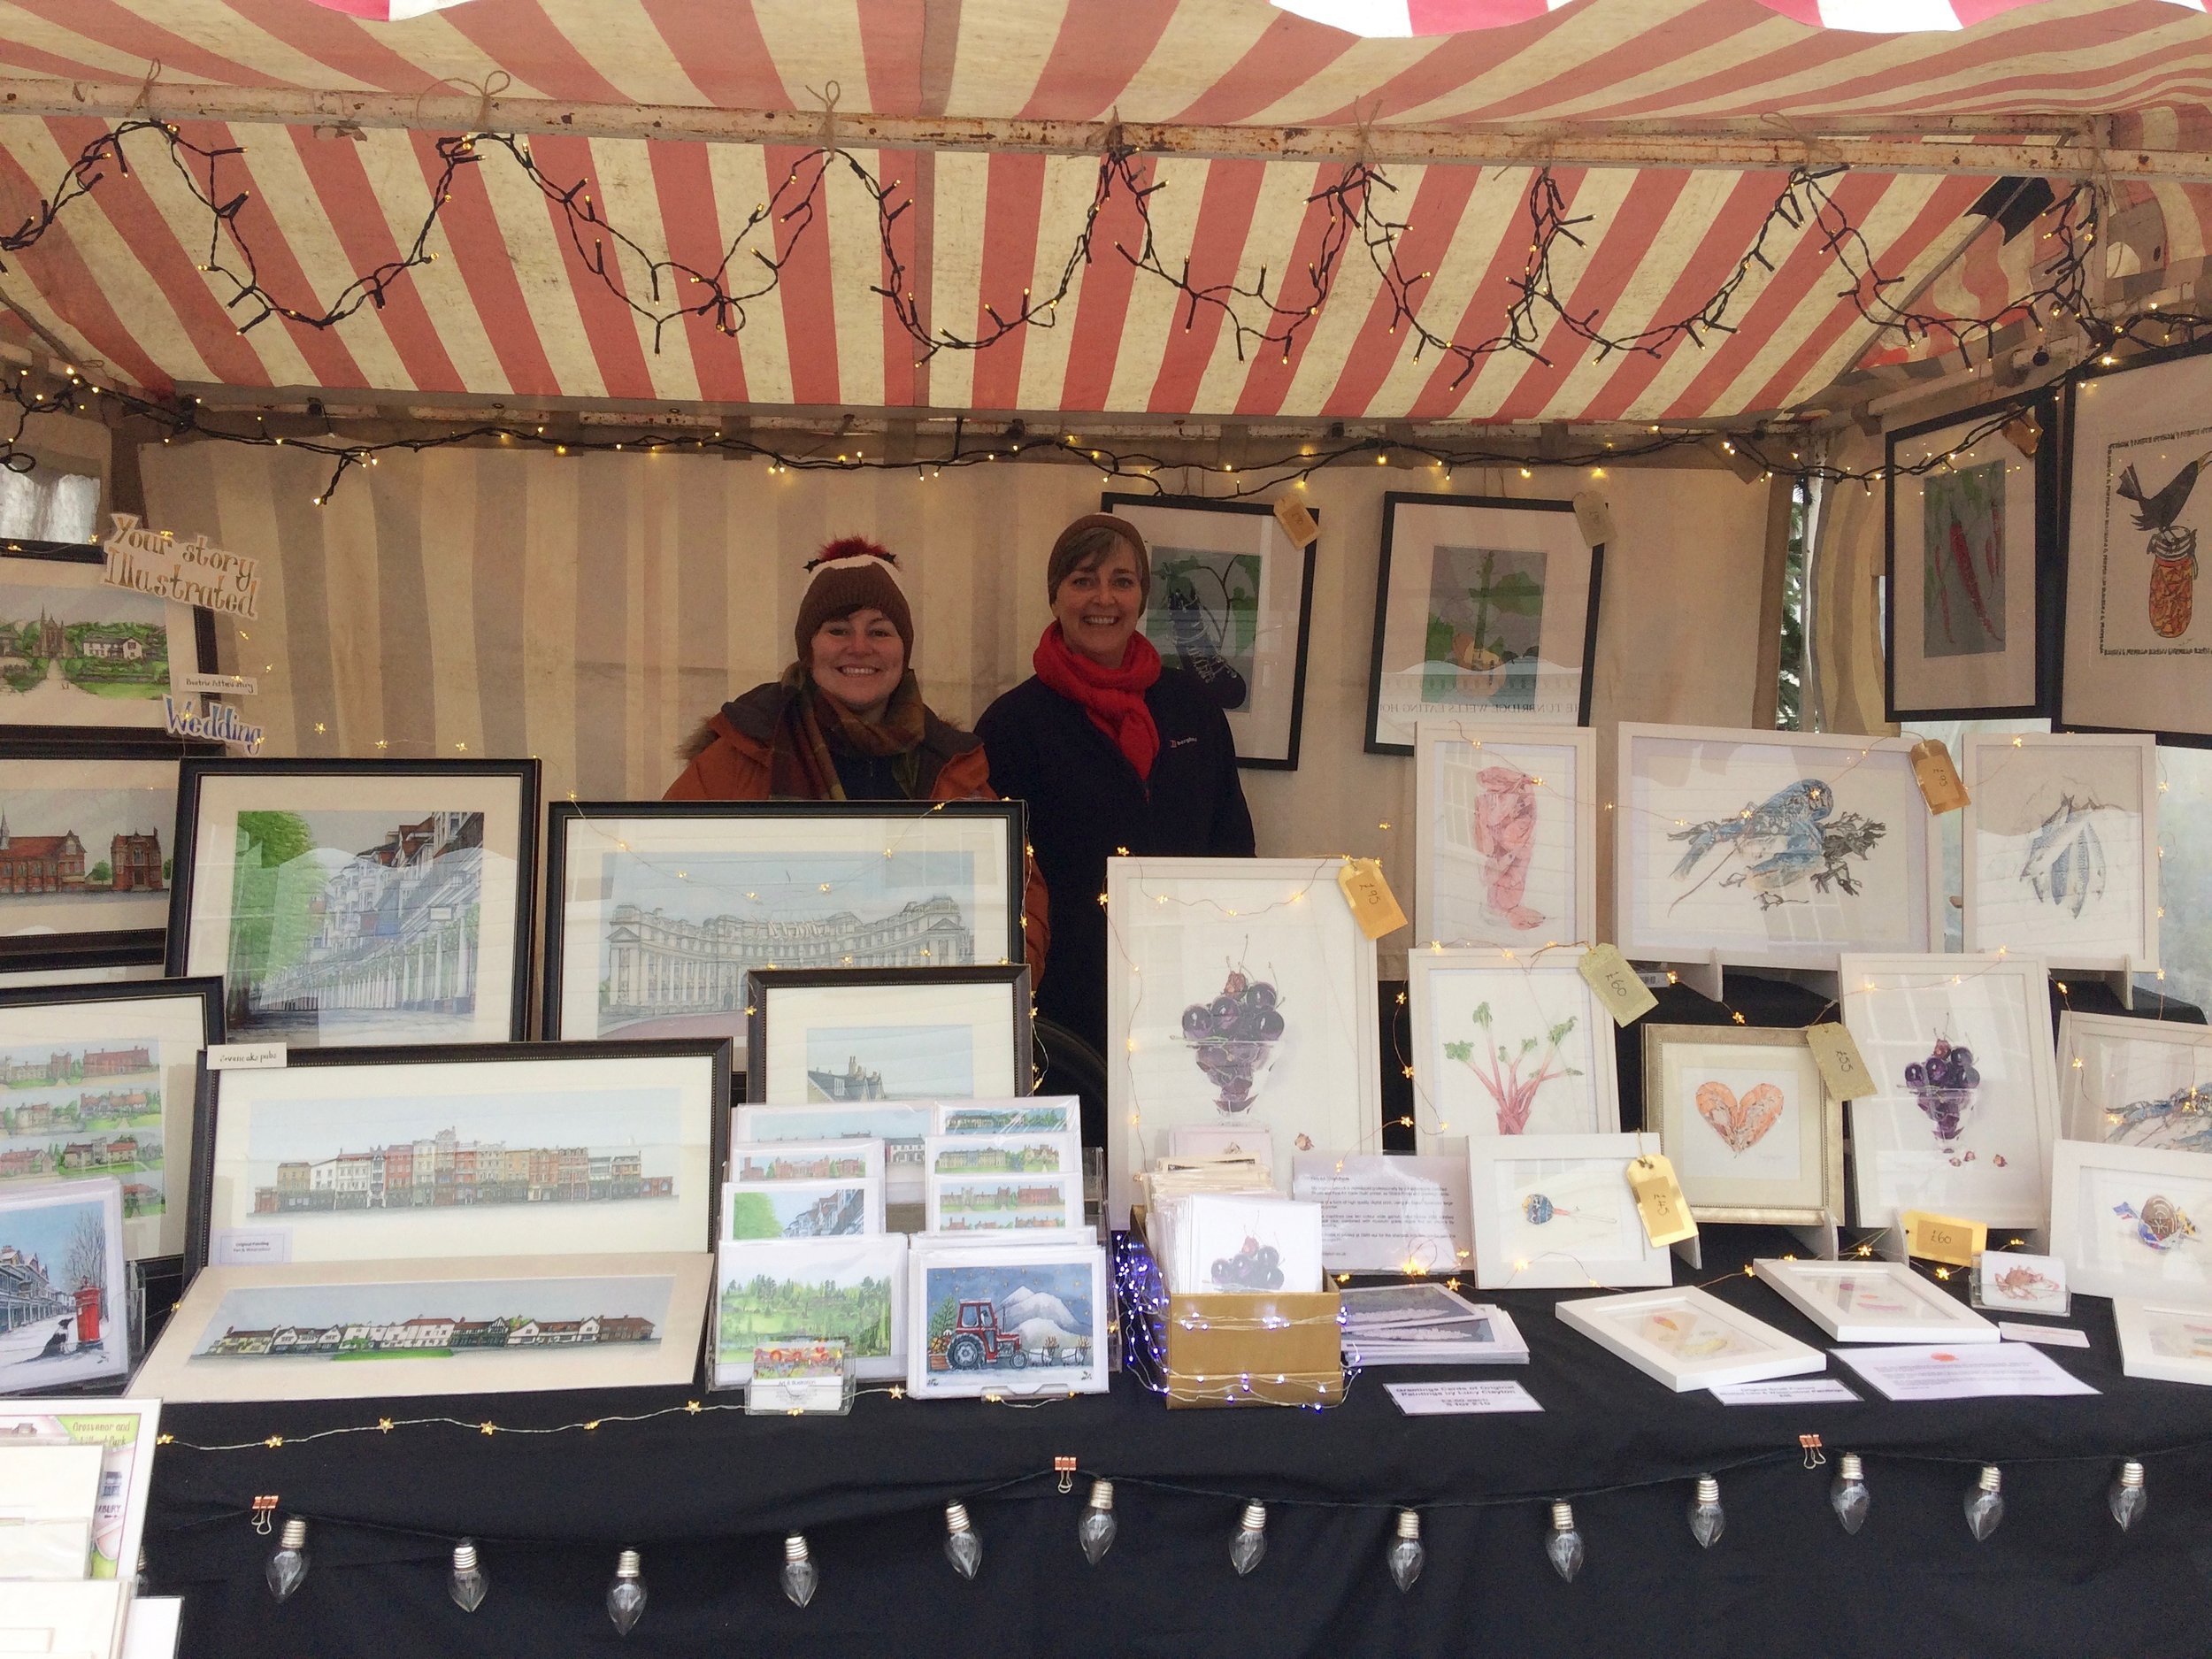 Elaine Gill & Lucy Clayton at The Pantiles Christmas Market in Tunbridge Wells, Kent.